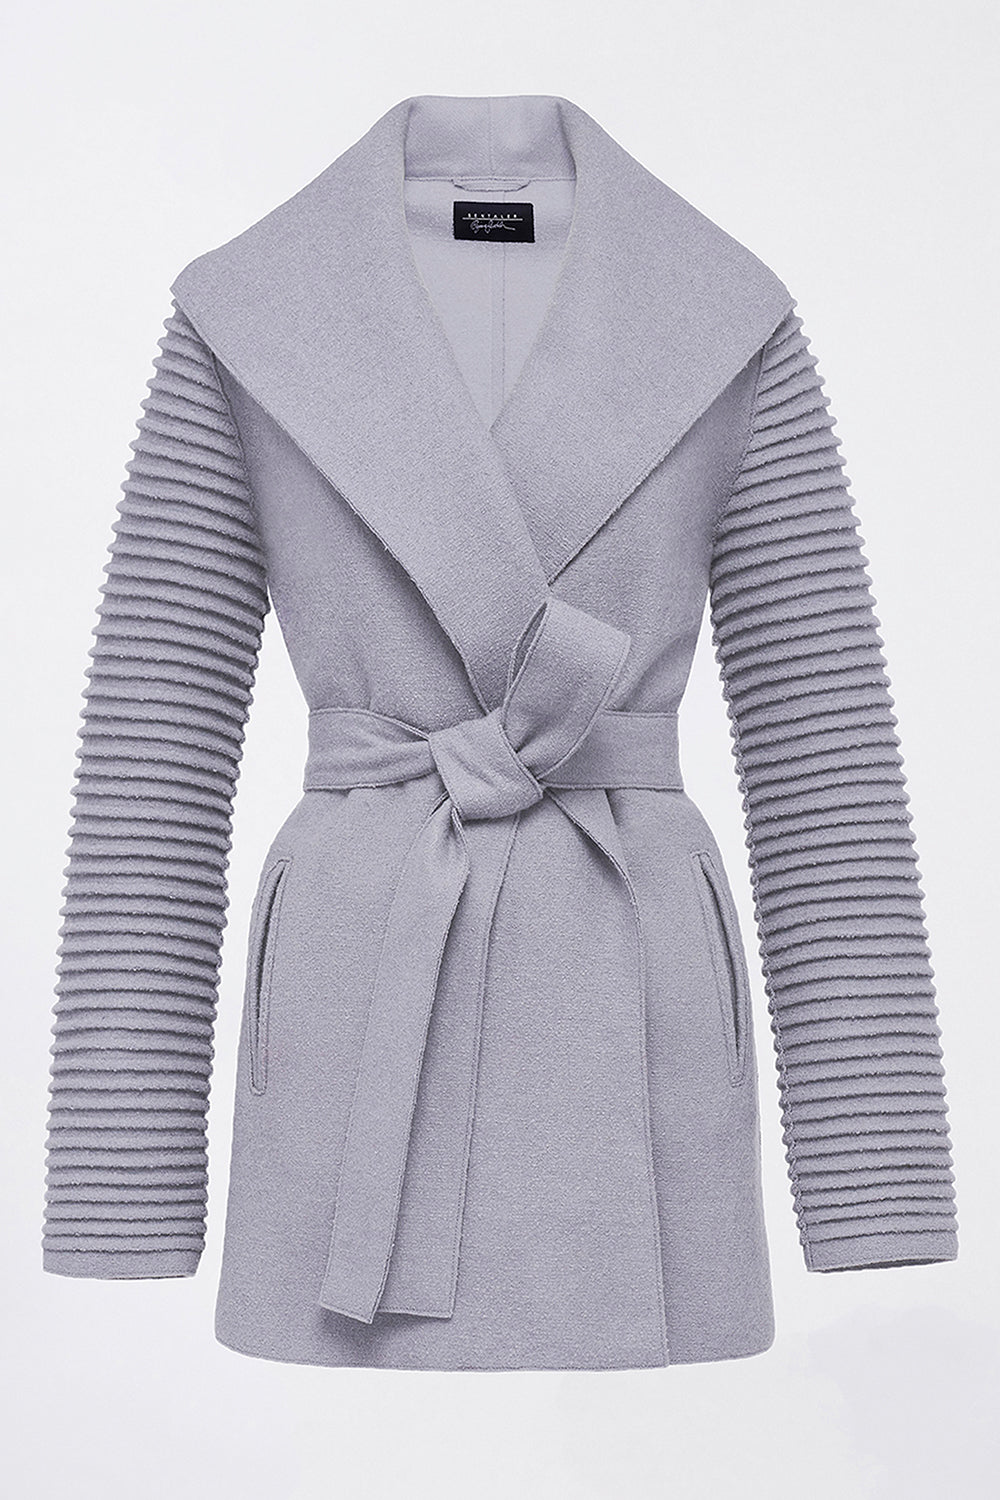 Sentaler Wrap Coat with Ribbed Sleeves featured in Superfine Alpaca and available in Gull Grey. Seen off model.